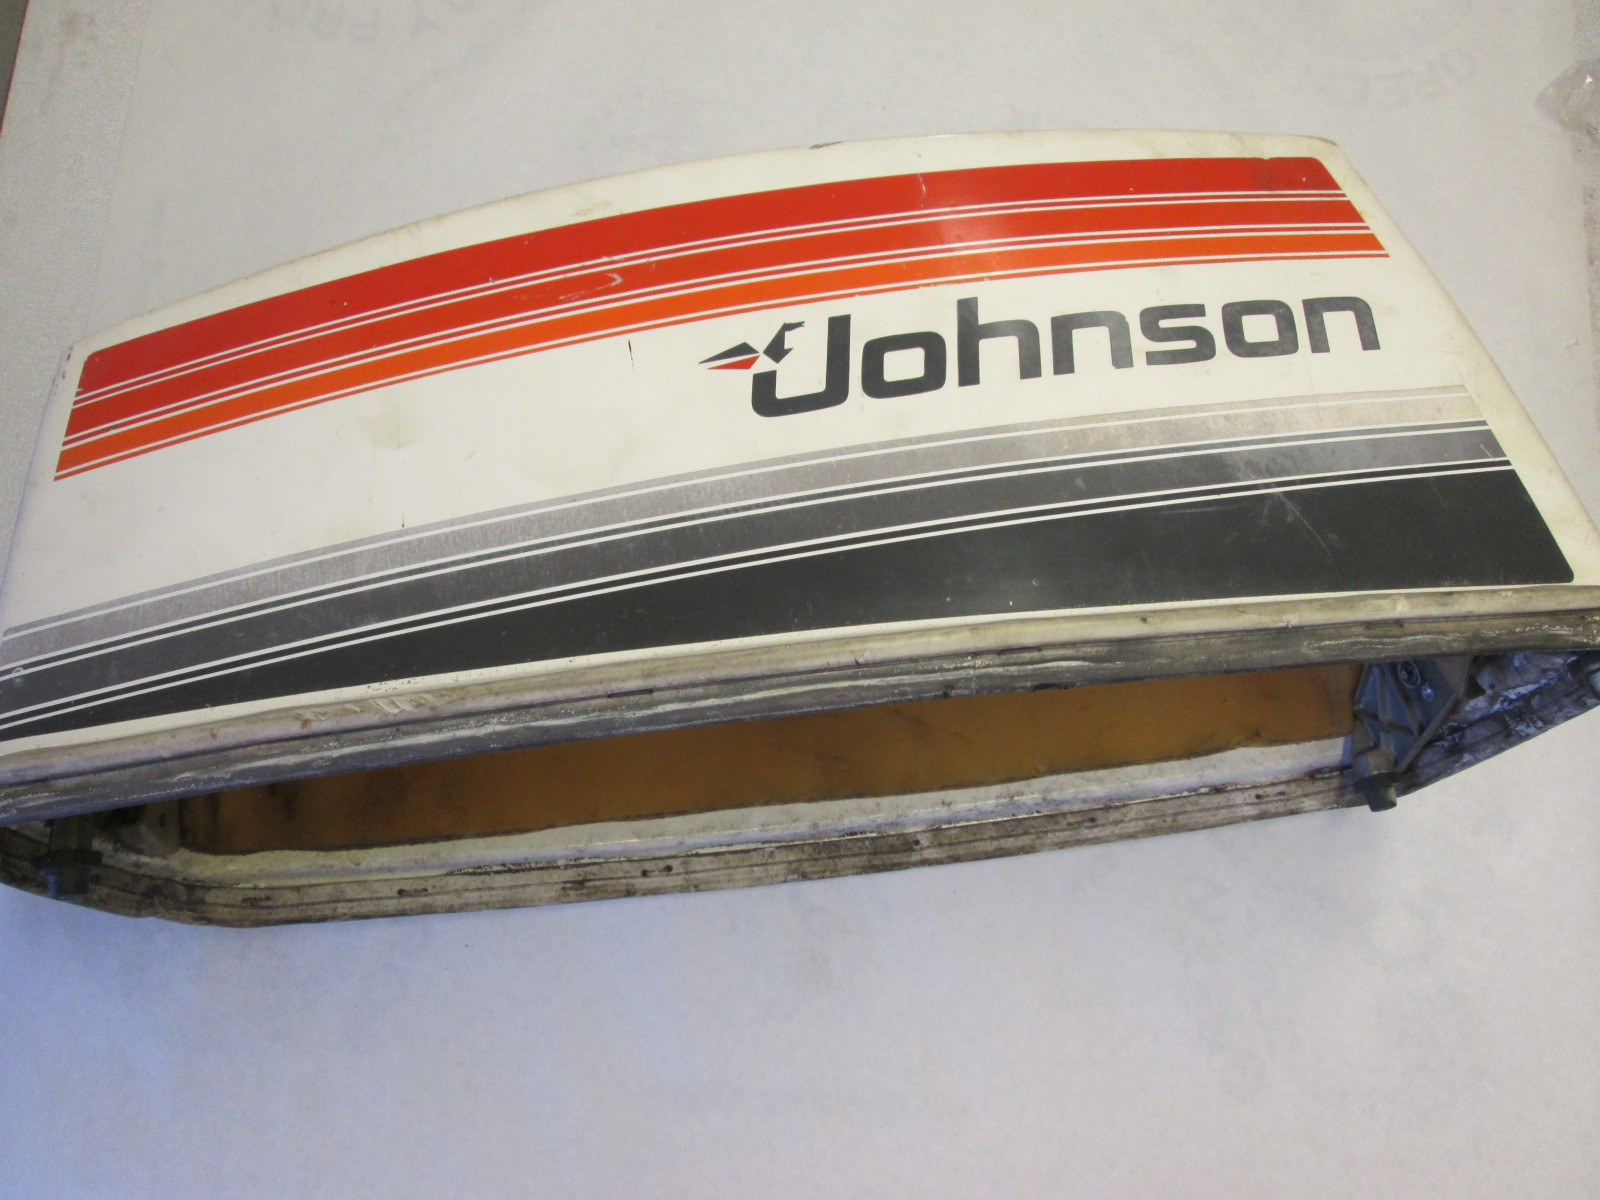 0389300 389300 johnson evinrude 50hp engine cover outboard for Boat motor covers johnson